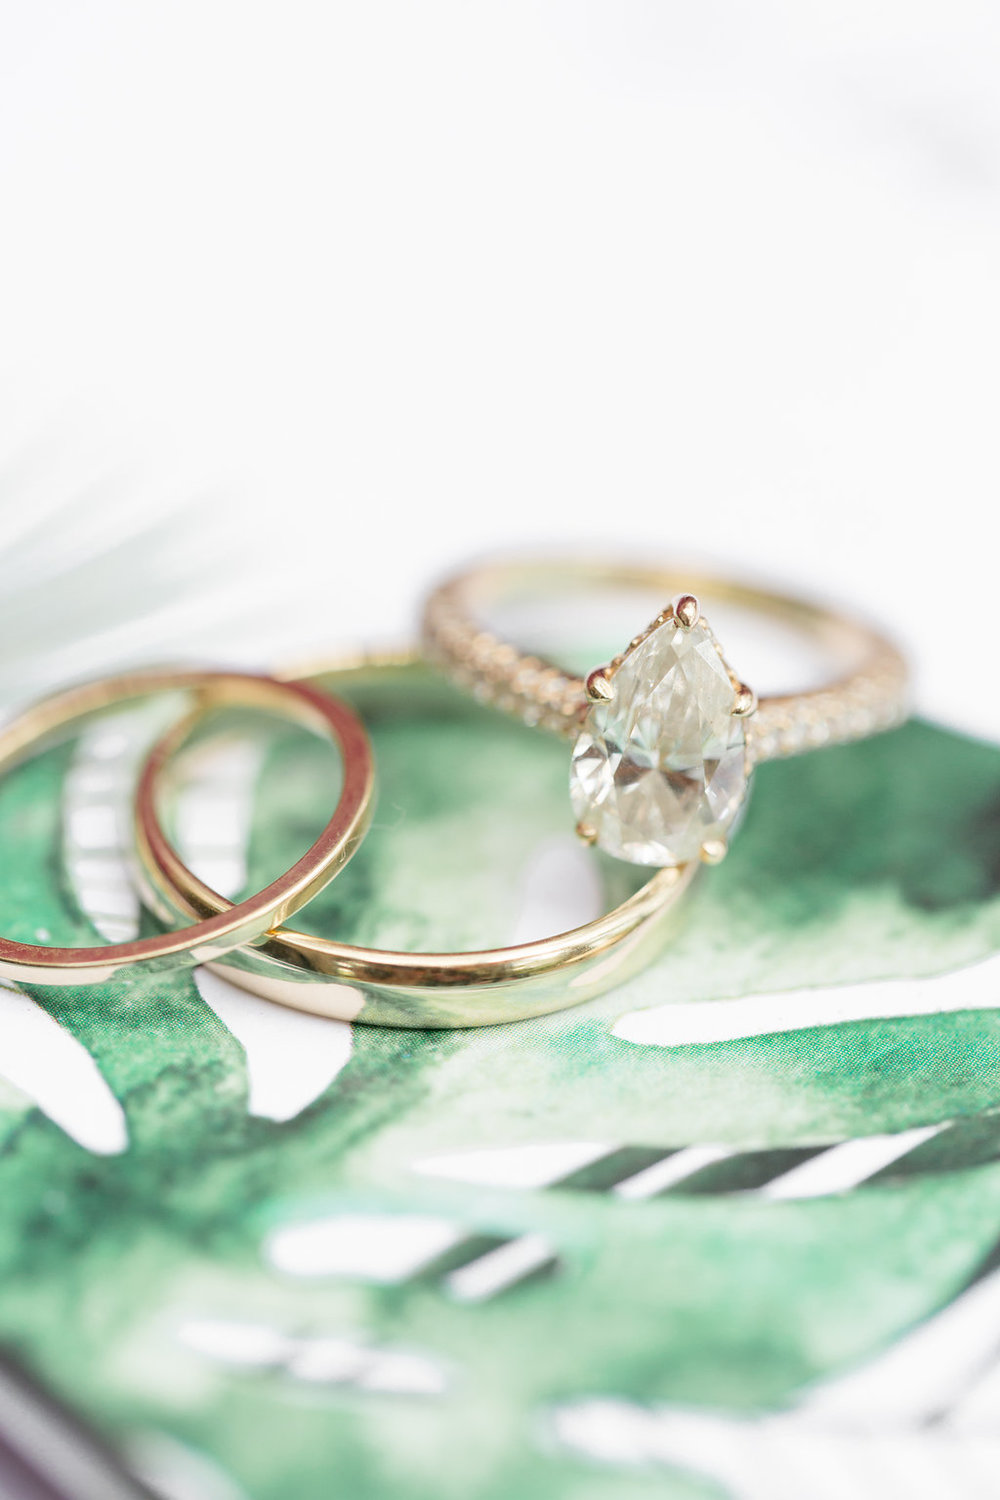 Gold Pear Engagement Ring - Musgrove Plantation Georgia Wedding Venue